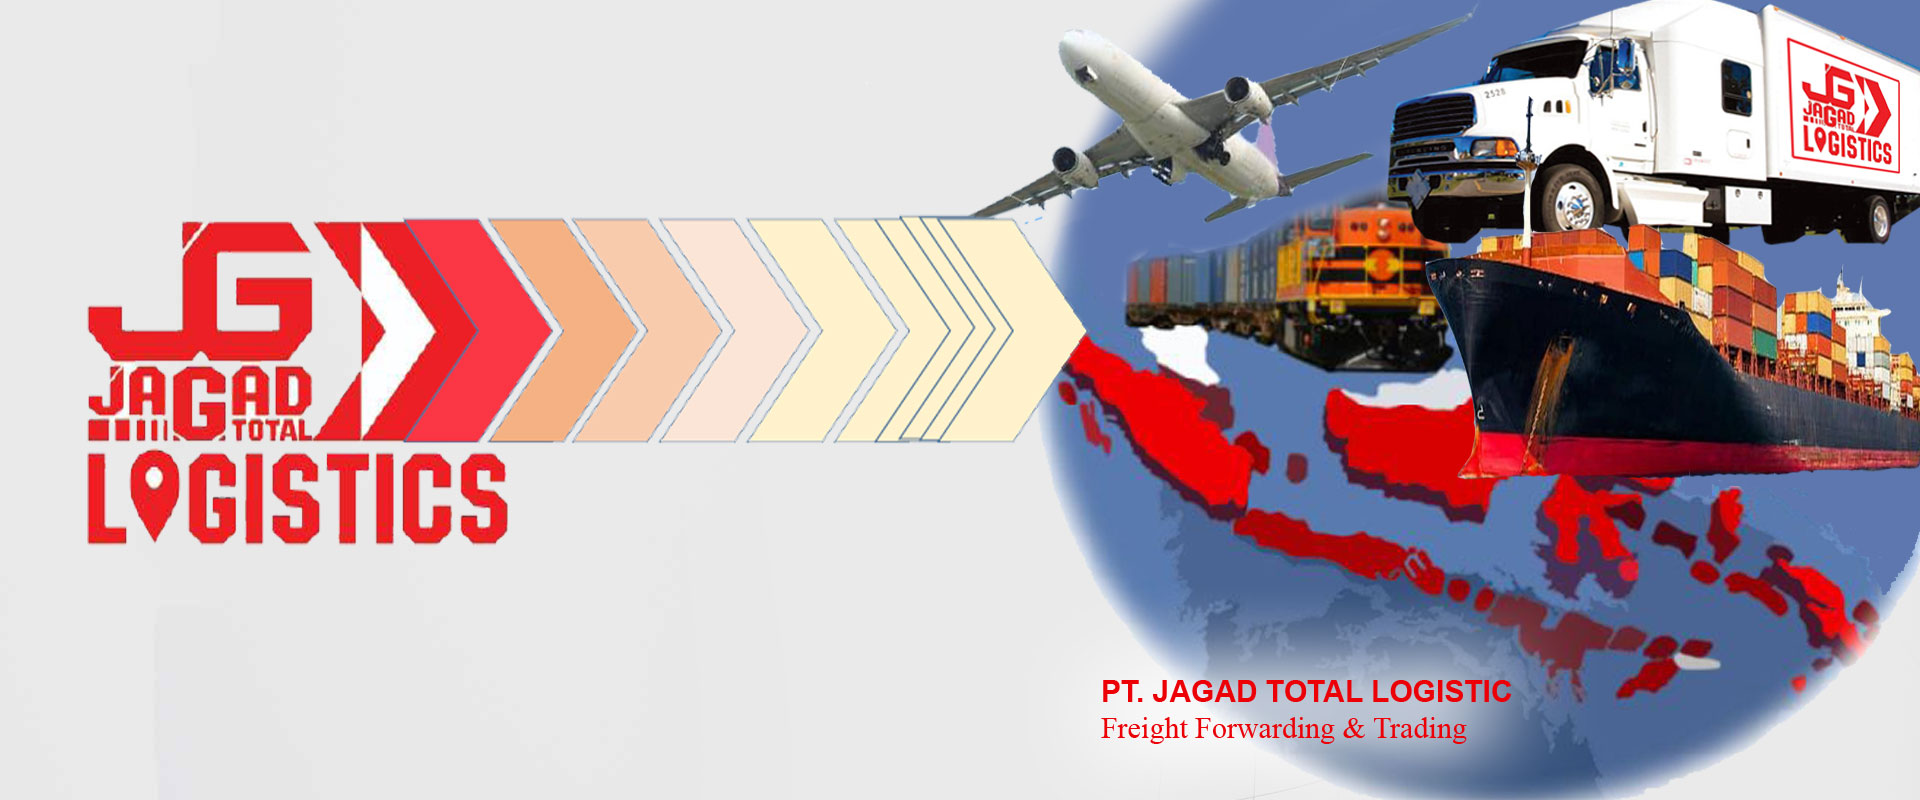 PT. JAGAD TOTAL LOGISTIC, PT JAGAD TOTAL LOGISTIC, JAGAD TOTAL LOGISTIC, PT. JTL, general construction, general construction surabaya, general construction sidoarjo, Freight Forwarding, Freight Forwarding sidoarjo, Freight Forwarding surabaya, freight forwarding & trading, freight forwarding & trading sidoarjo, freight forwarding & trading surabaya, jasa konstruksi, jasa kontruksi surabaya, jasa kontruksi sidoarjo, jasa kontruksi indonesia, general contractor, general contractor surabaya, general contractor sidoarjo, general contactor indonesia, Jagad Group sidoarjo, kantor pt jagad group, PT JAGAD GROUP Jalan Nanas Utara 2 Tambaksari Tambakrejo Kabupaten Sidoarjo Jawa Timur, PT. Jagad Group, PT Jagad Group, Jagad Group, pt jagad group sidoarjo